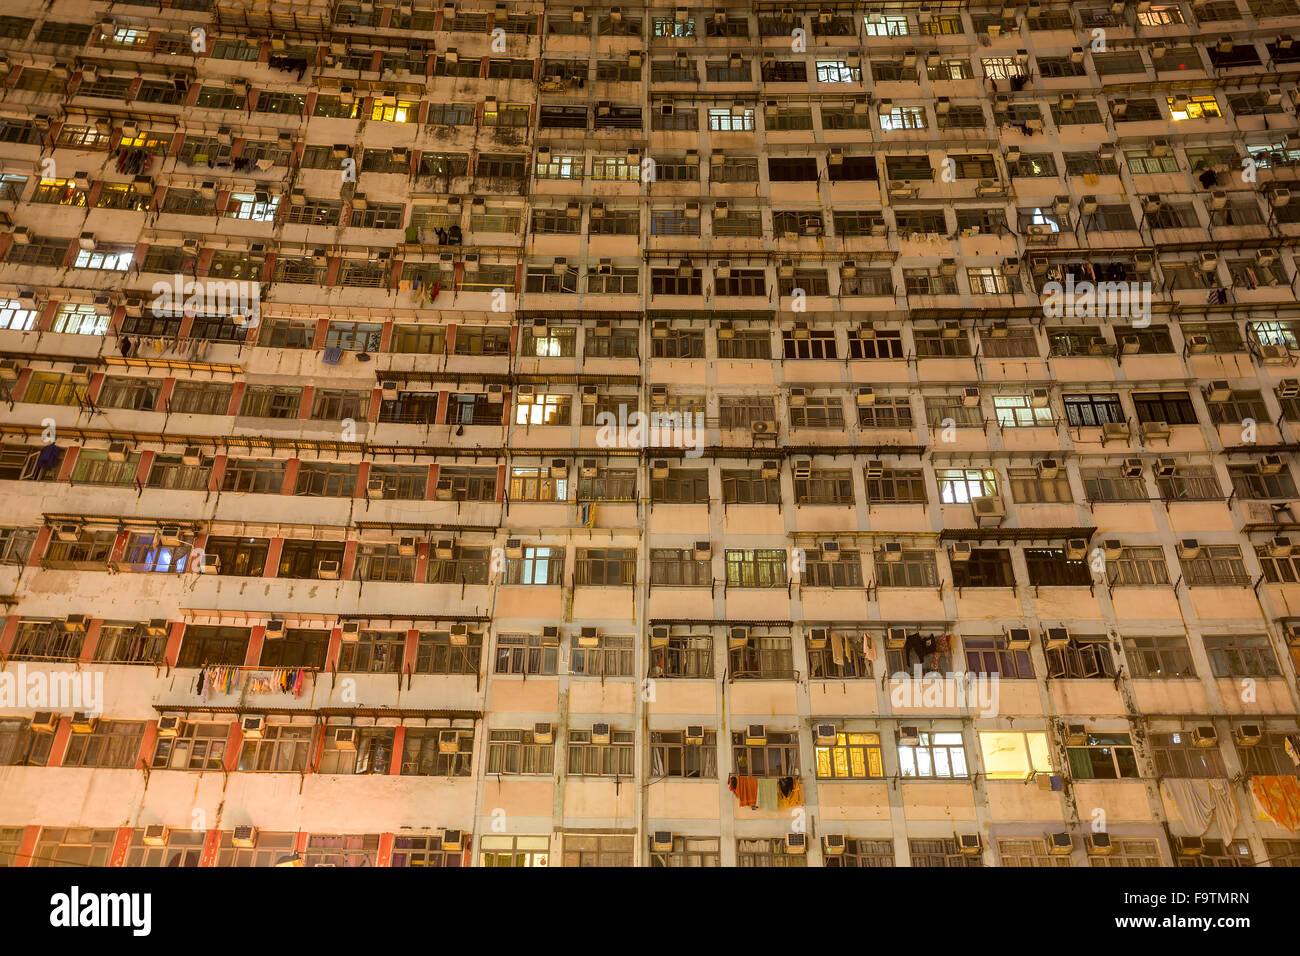 View of a high-density apartment building in Hong Kong - Stock Image